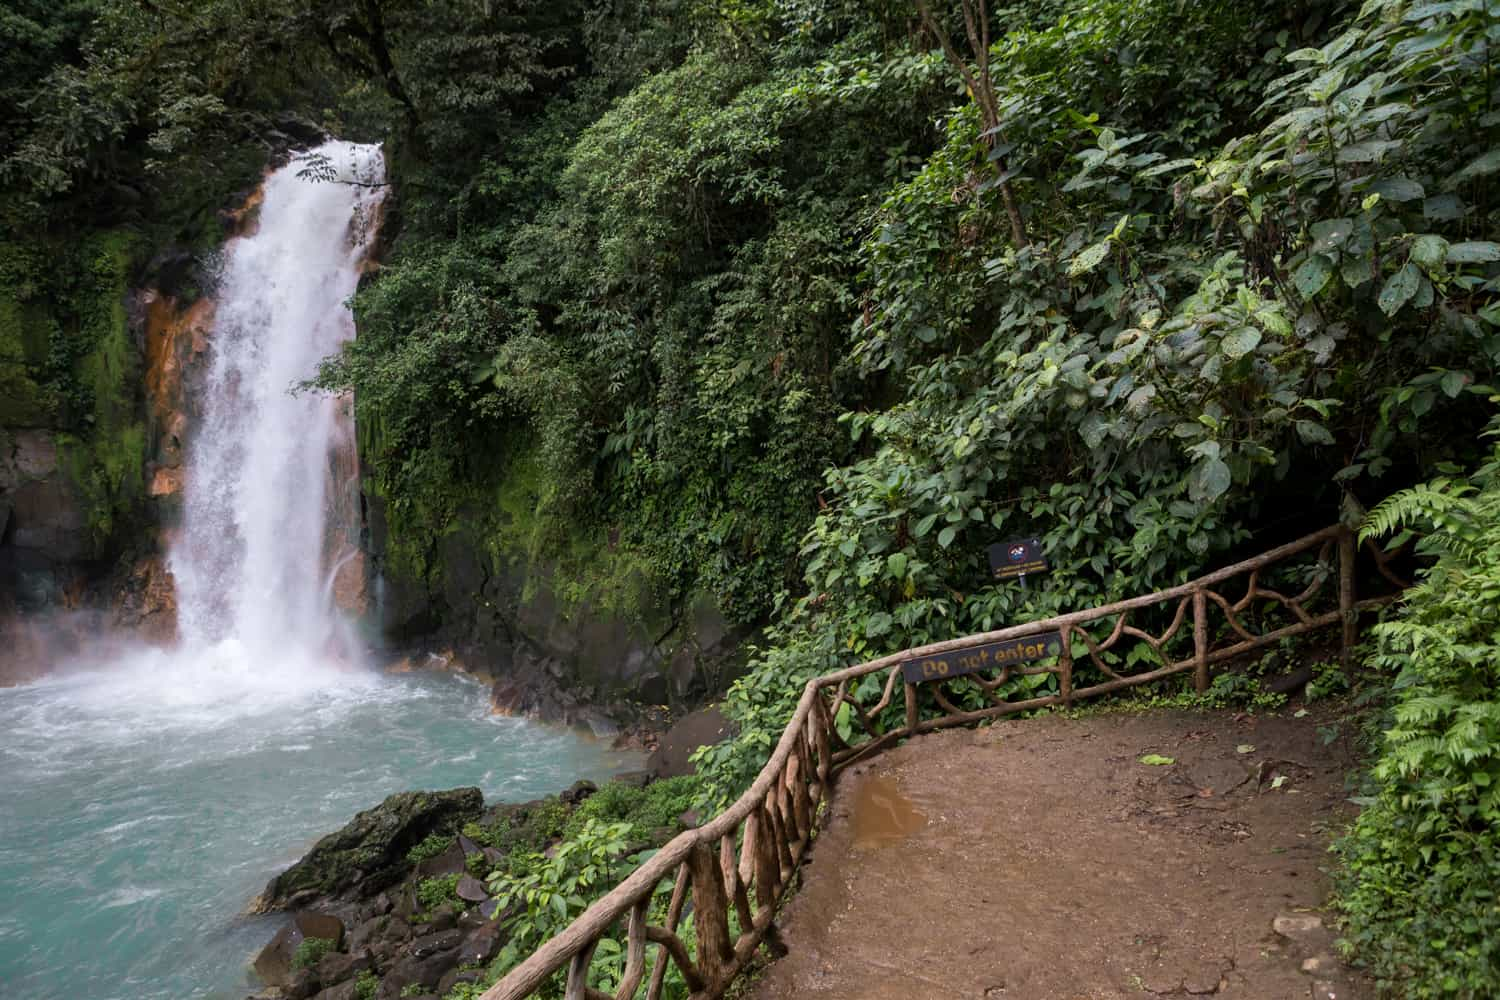 Terrace for weddings at Rio Celeste Waterfall with great views.